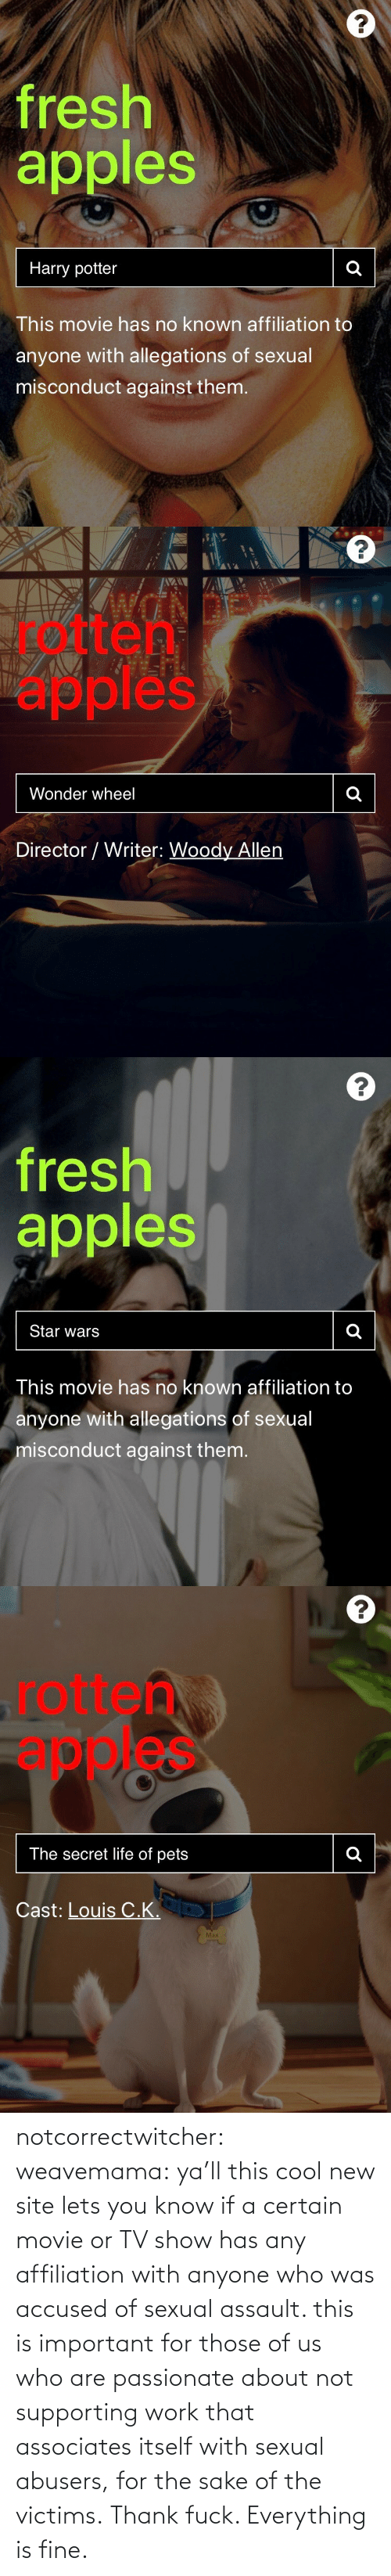 Tumblr, Work, and Blog: notcorrectwitcher:  weavemama: ya'll this cool new site lets you know if a certain movie or TV show has any affiliation with anyone who was accused of sexual assault. this is important for those of us who are passionate about not supporting work that associates itself with sexual abusers, for the sake of the victims.   Thank fuck. Everything is fine.